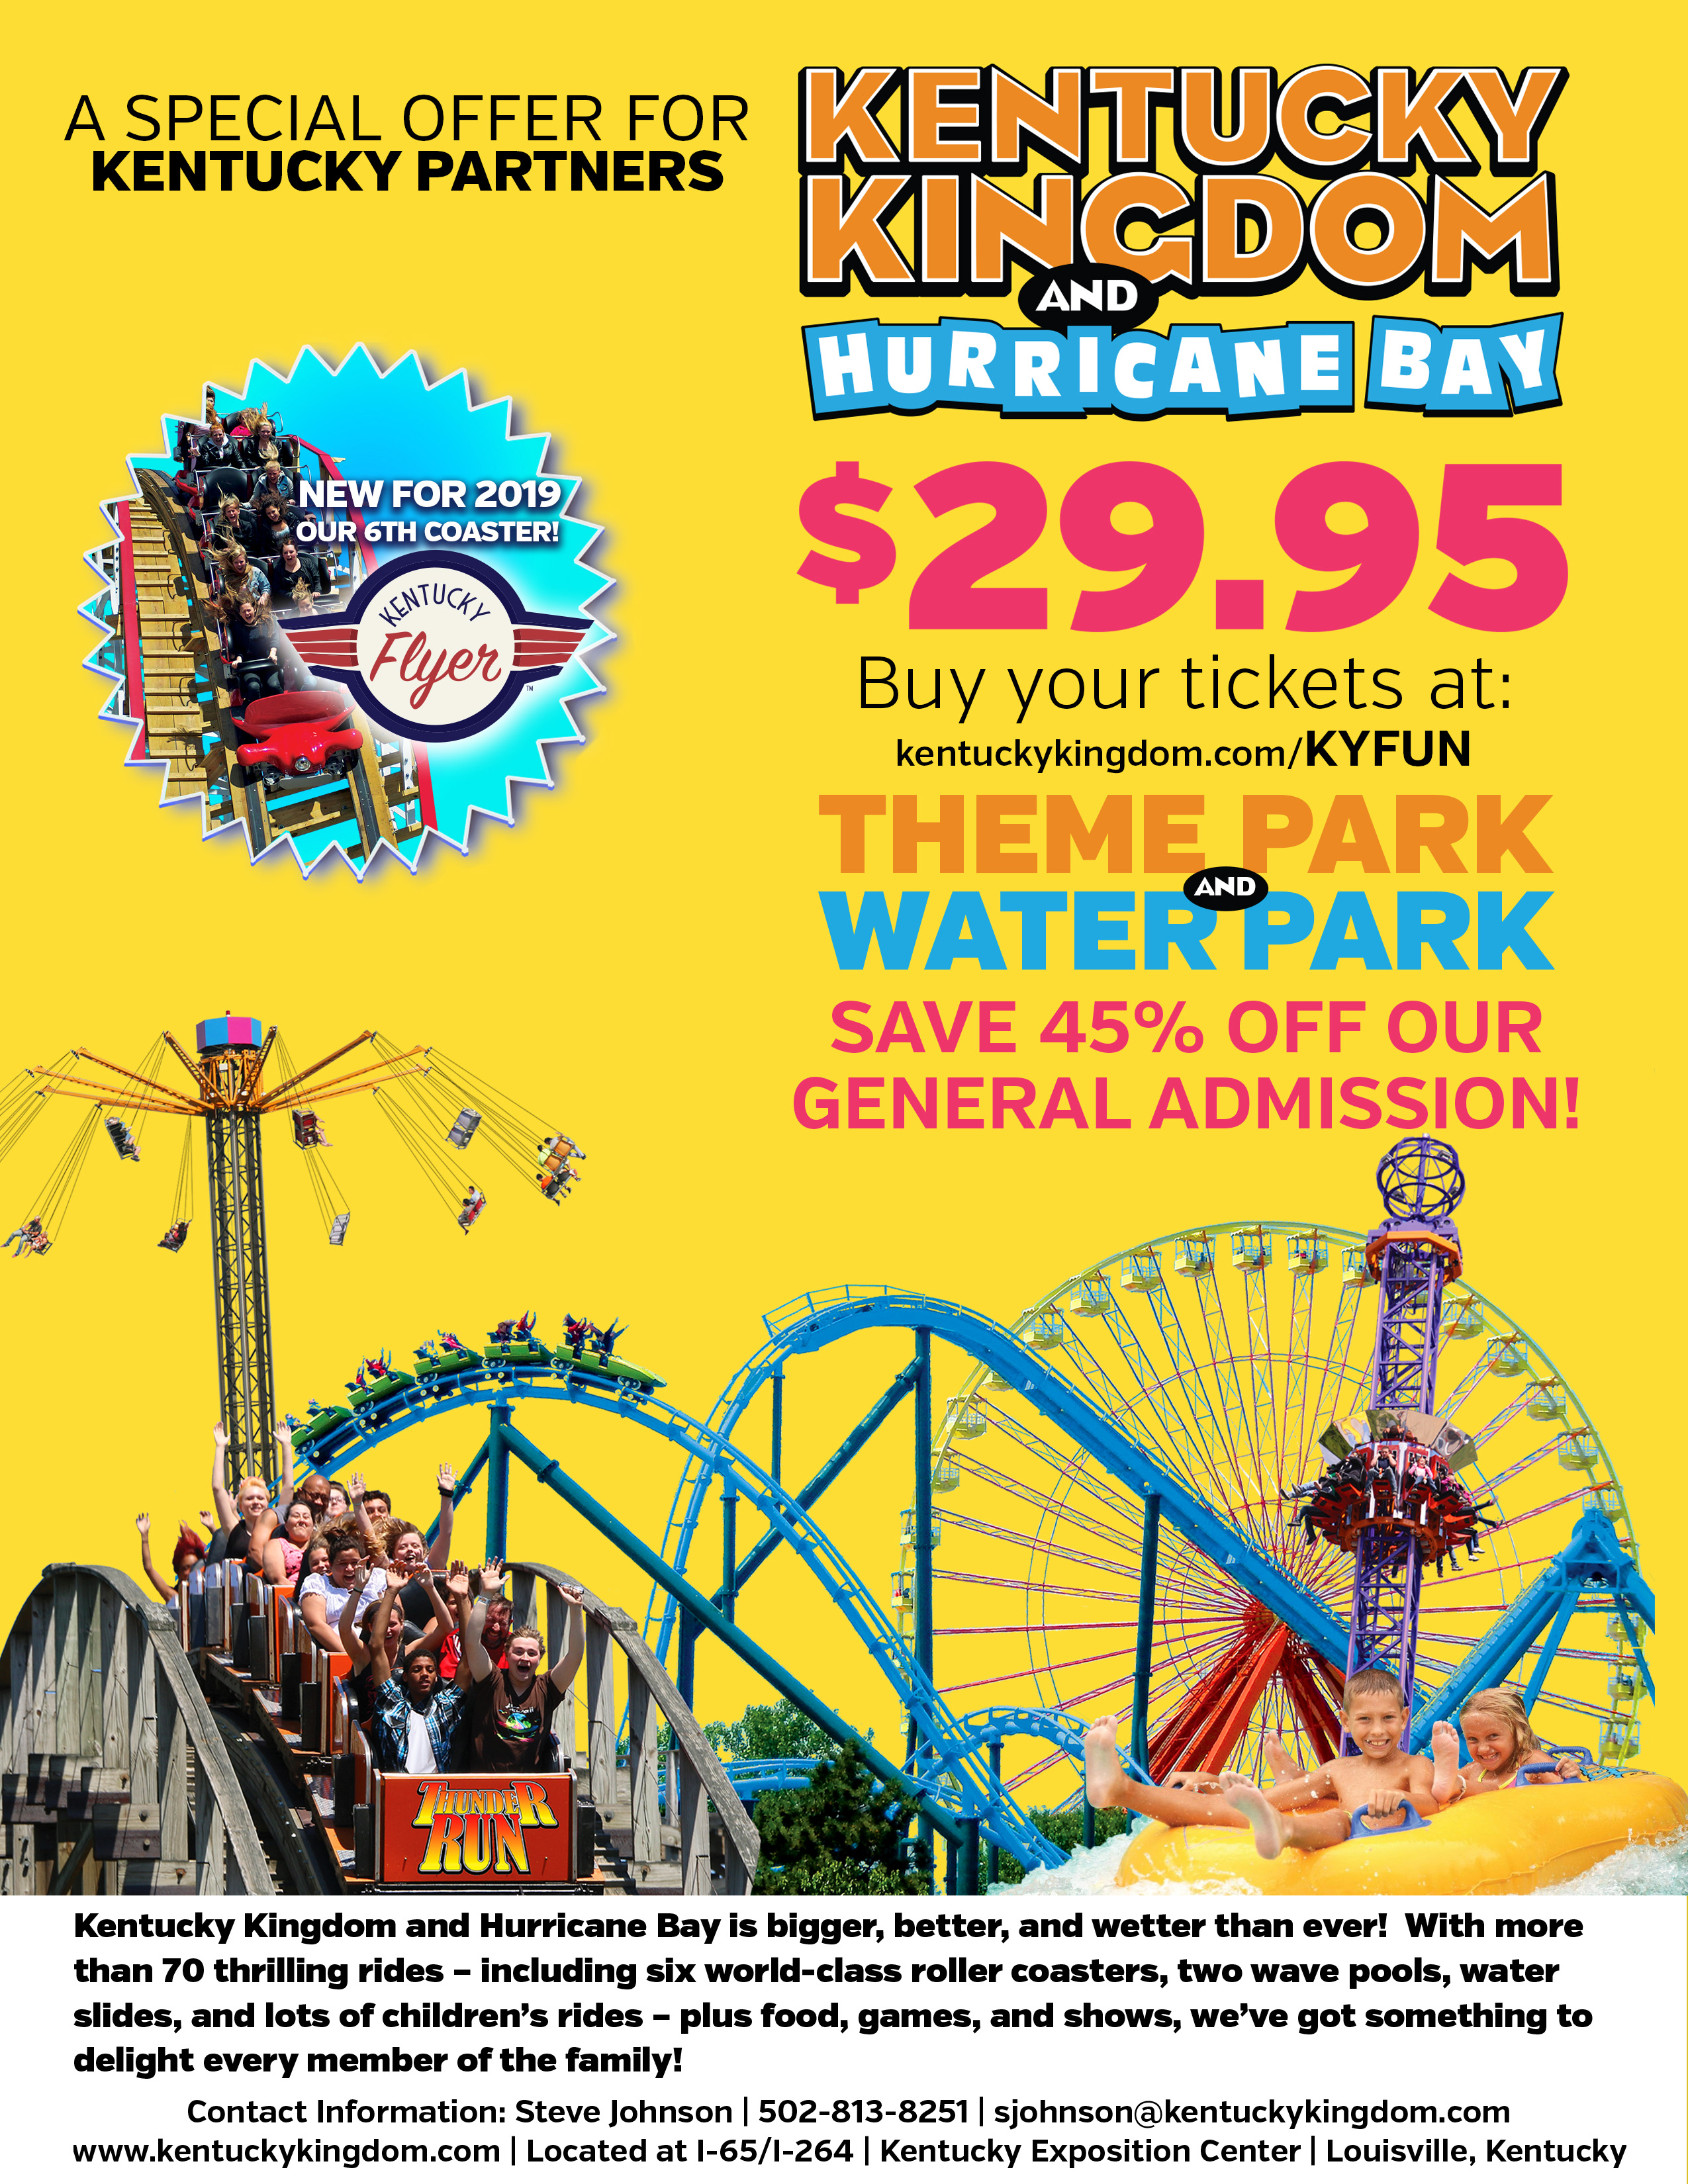 Kentucky Kingdom and Hurricane Discount Tickets for $29.95